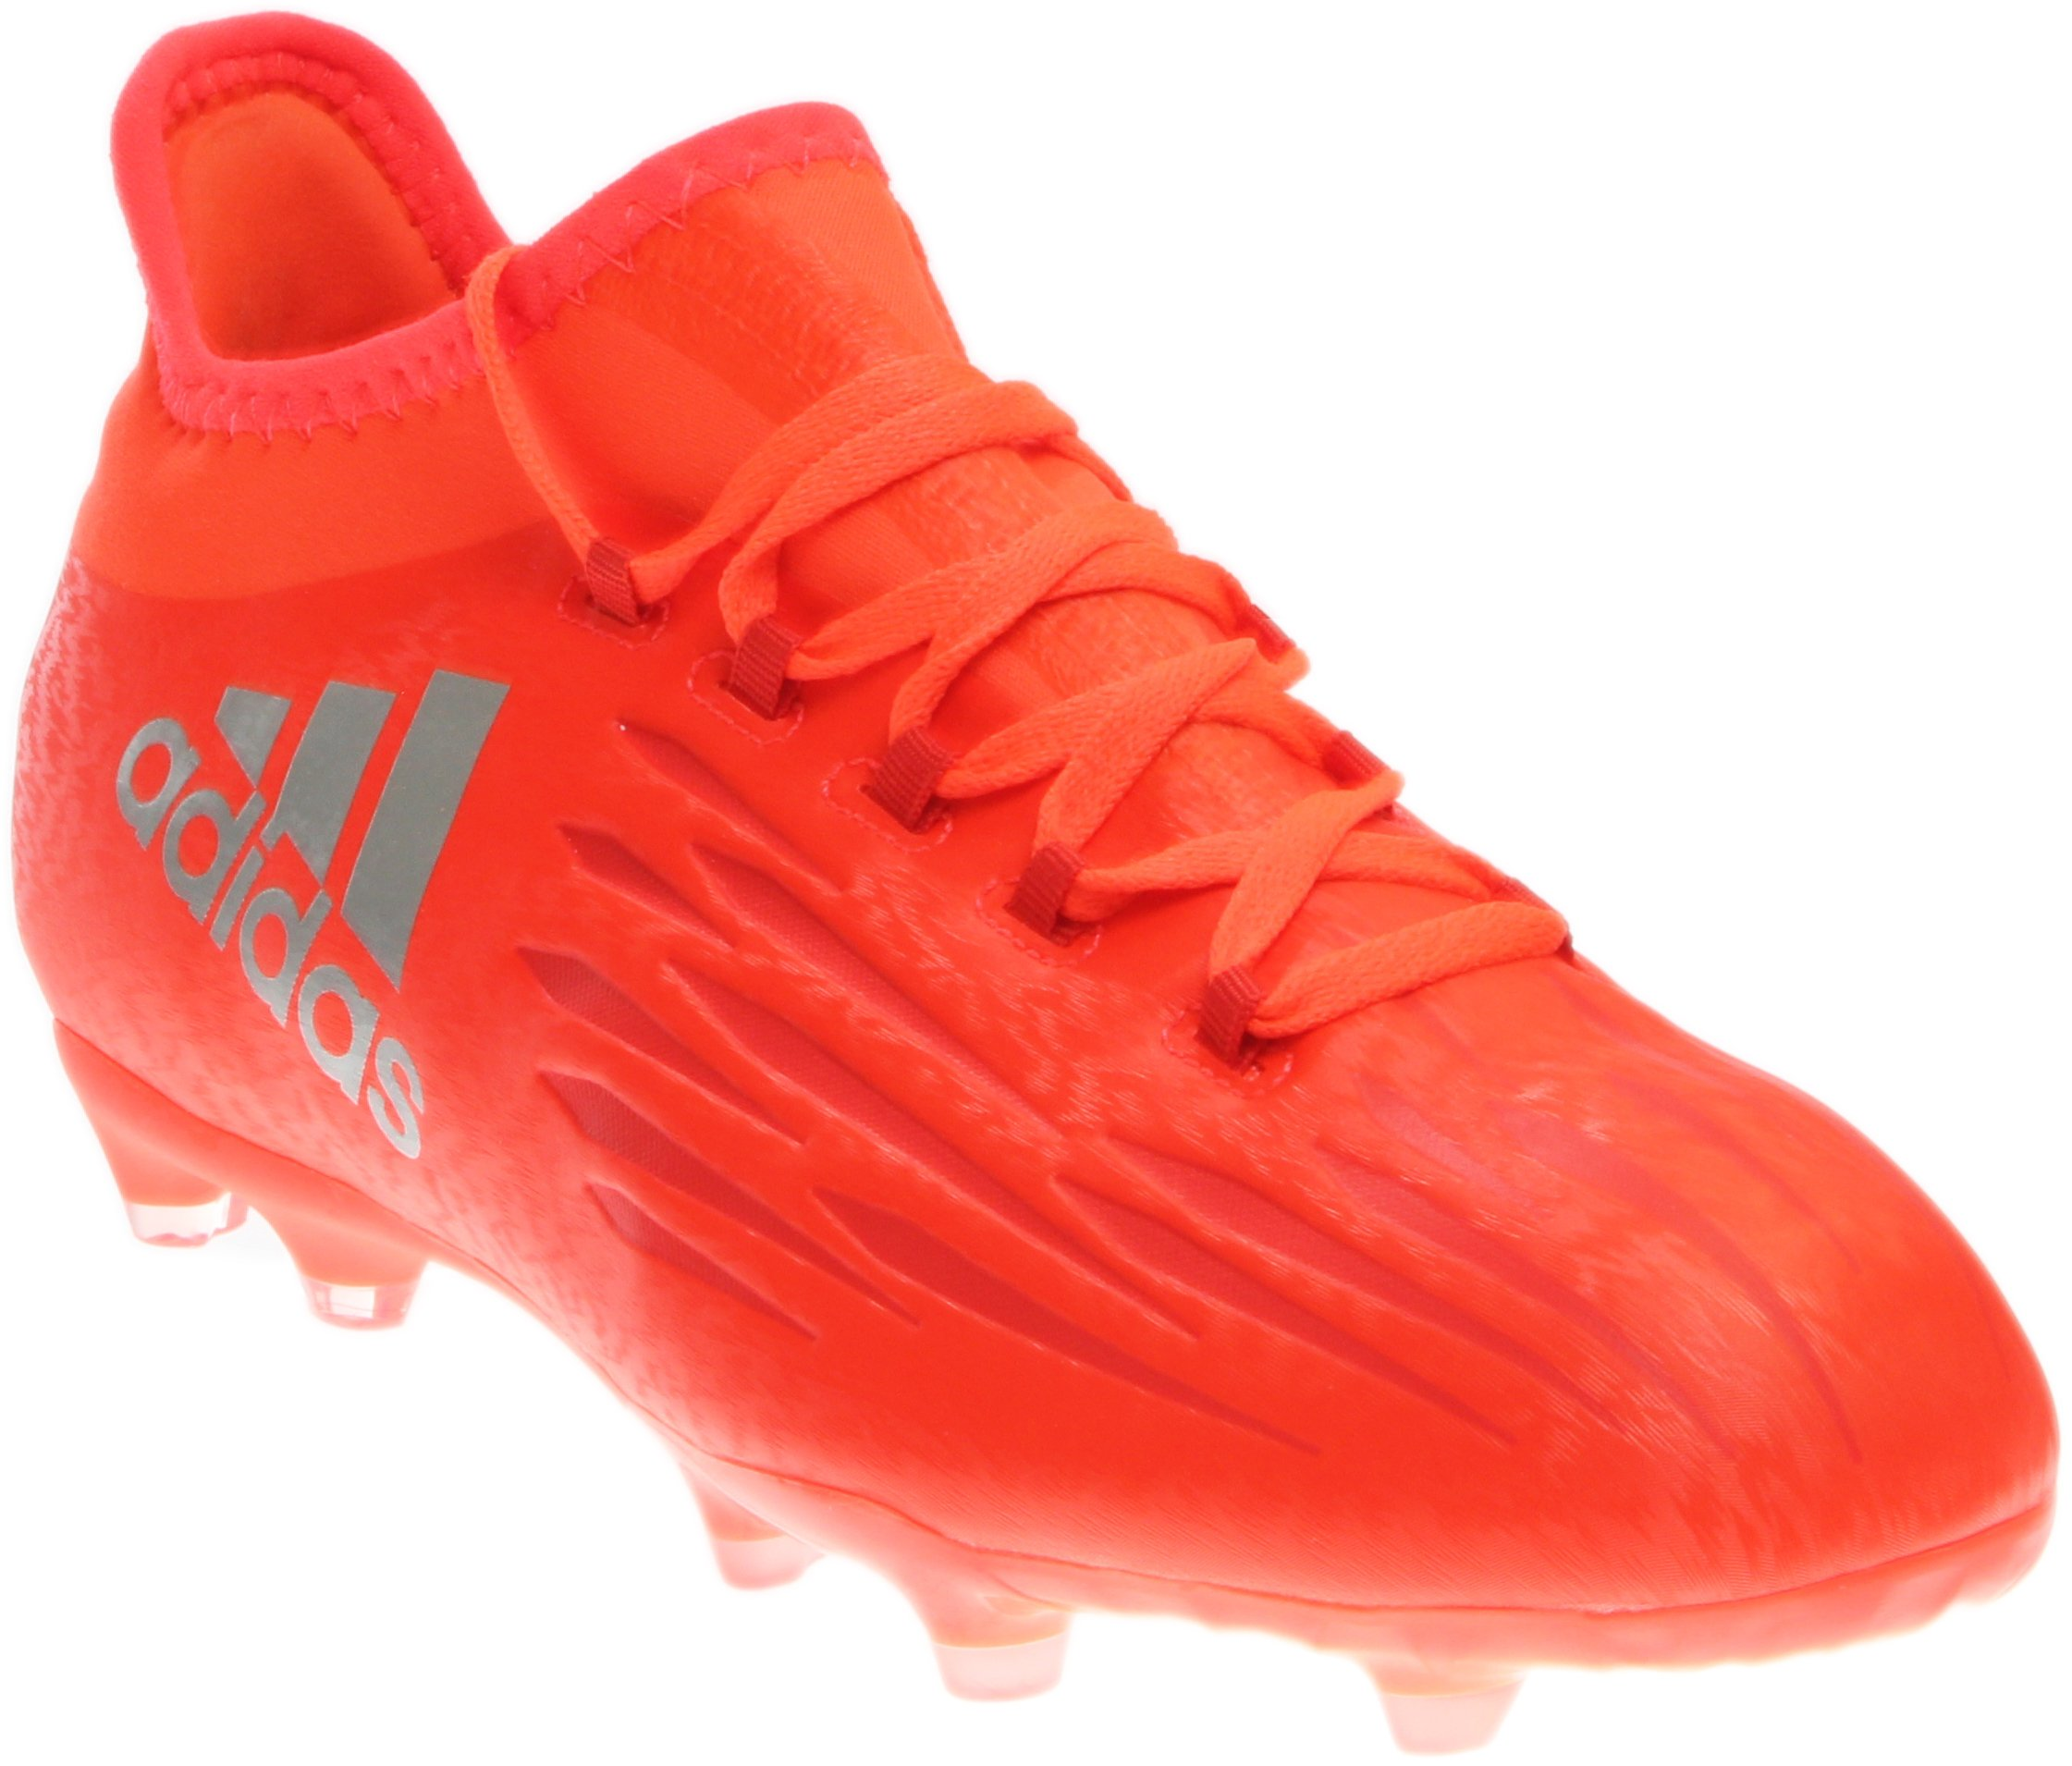 Adidas X 16.1 Youth Firm Ground Cleats [SOLRED] (4) by adidas